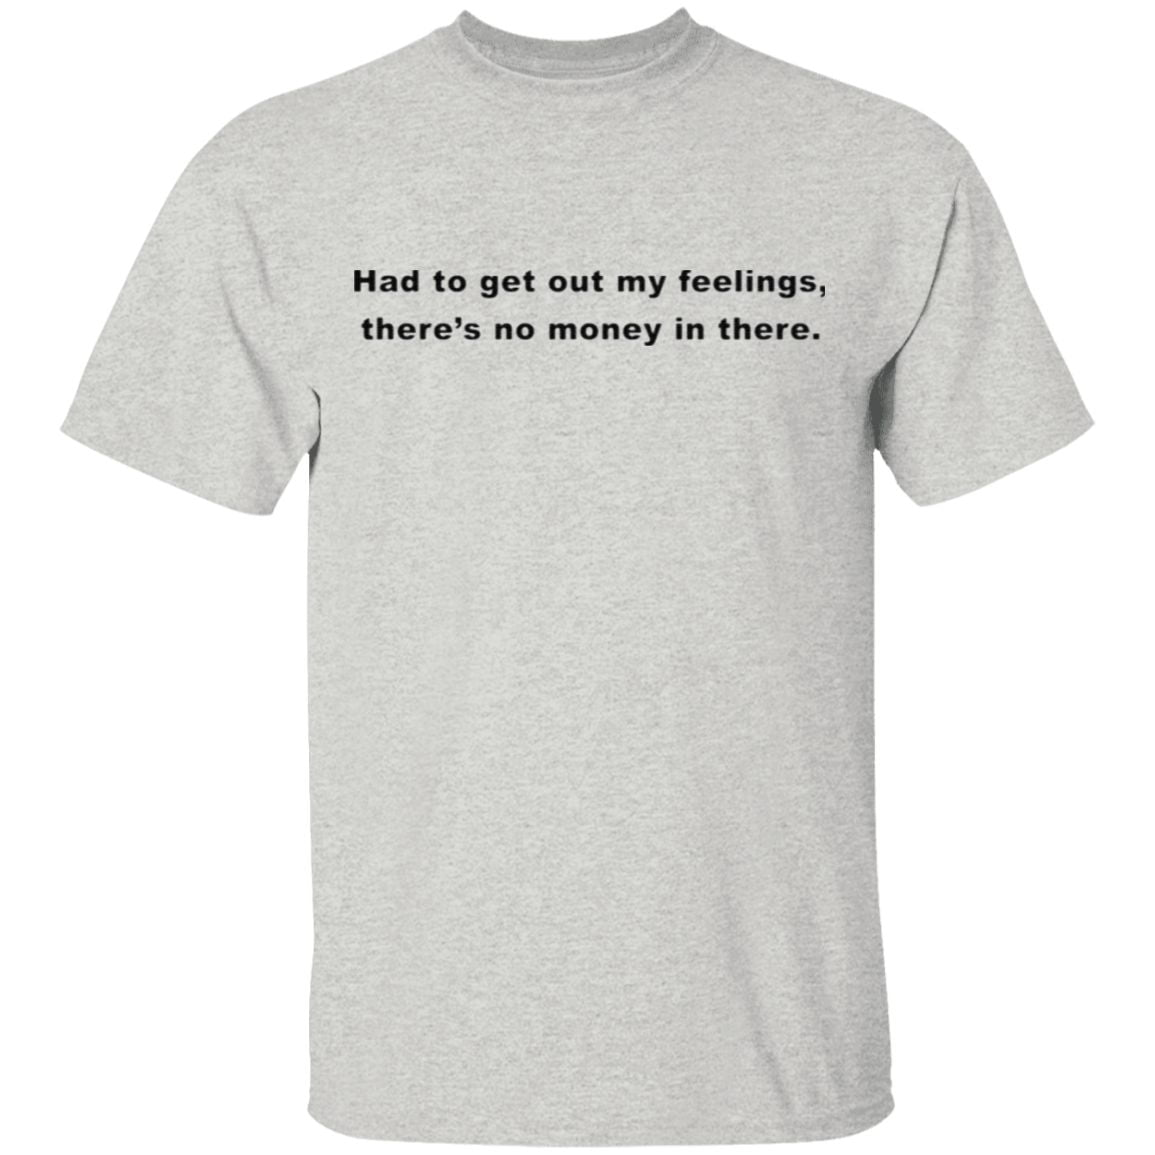 Had To Get Out My Feelings There's No Money In There t shirt